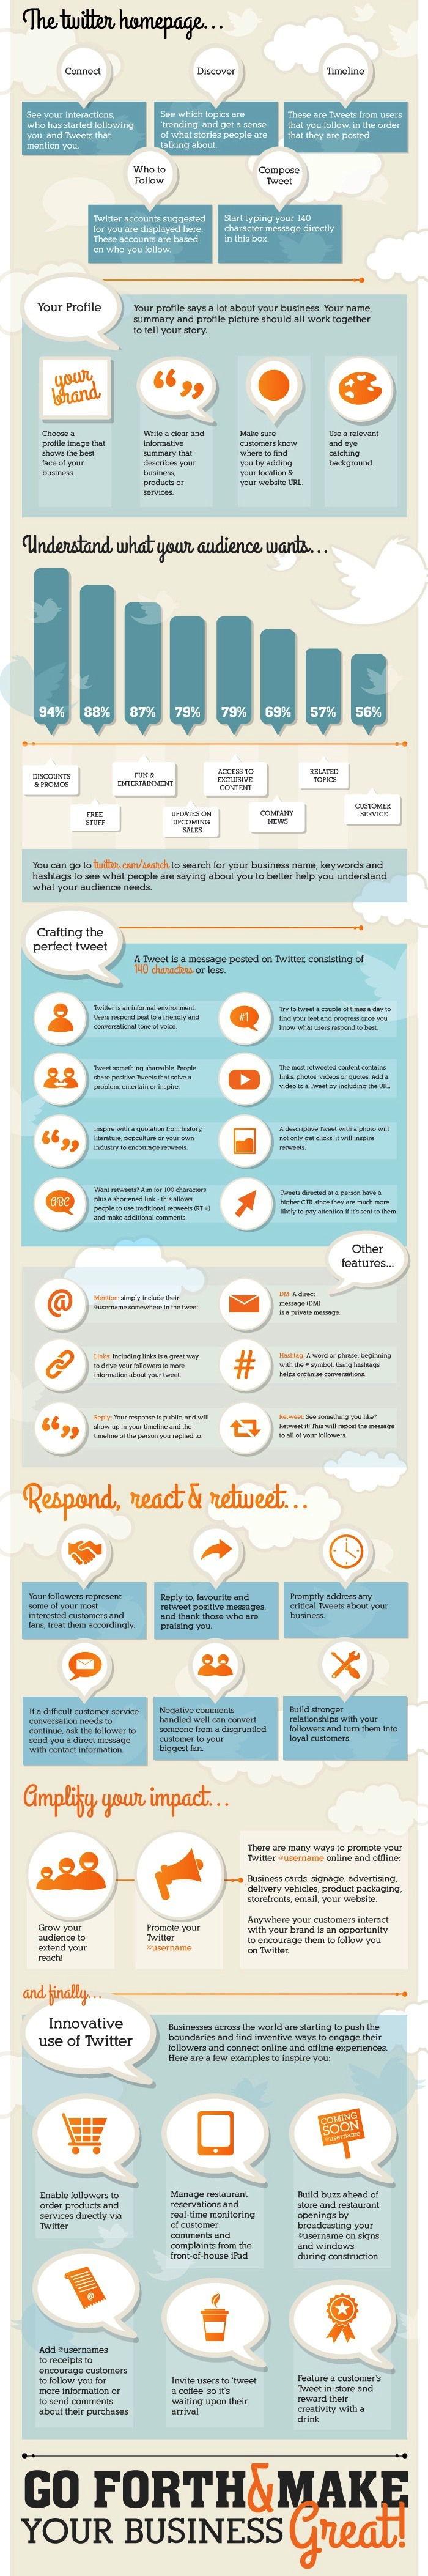 Infographic Business Guide to Twitter